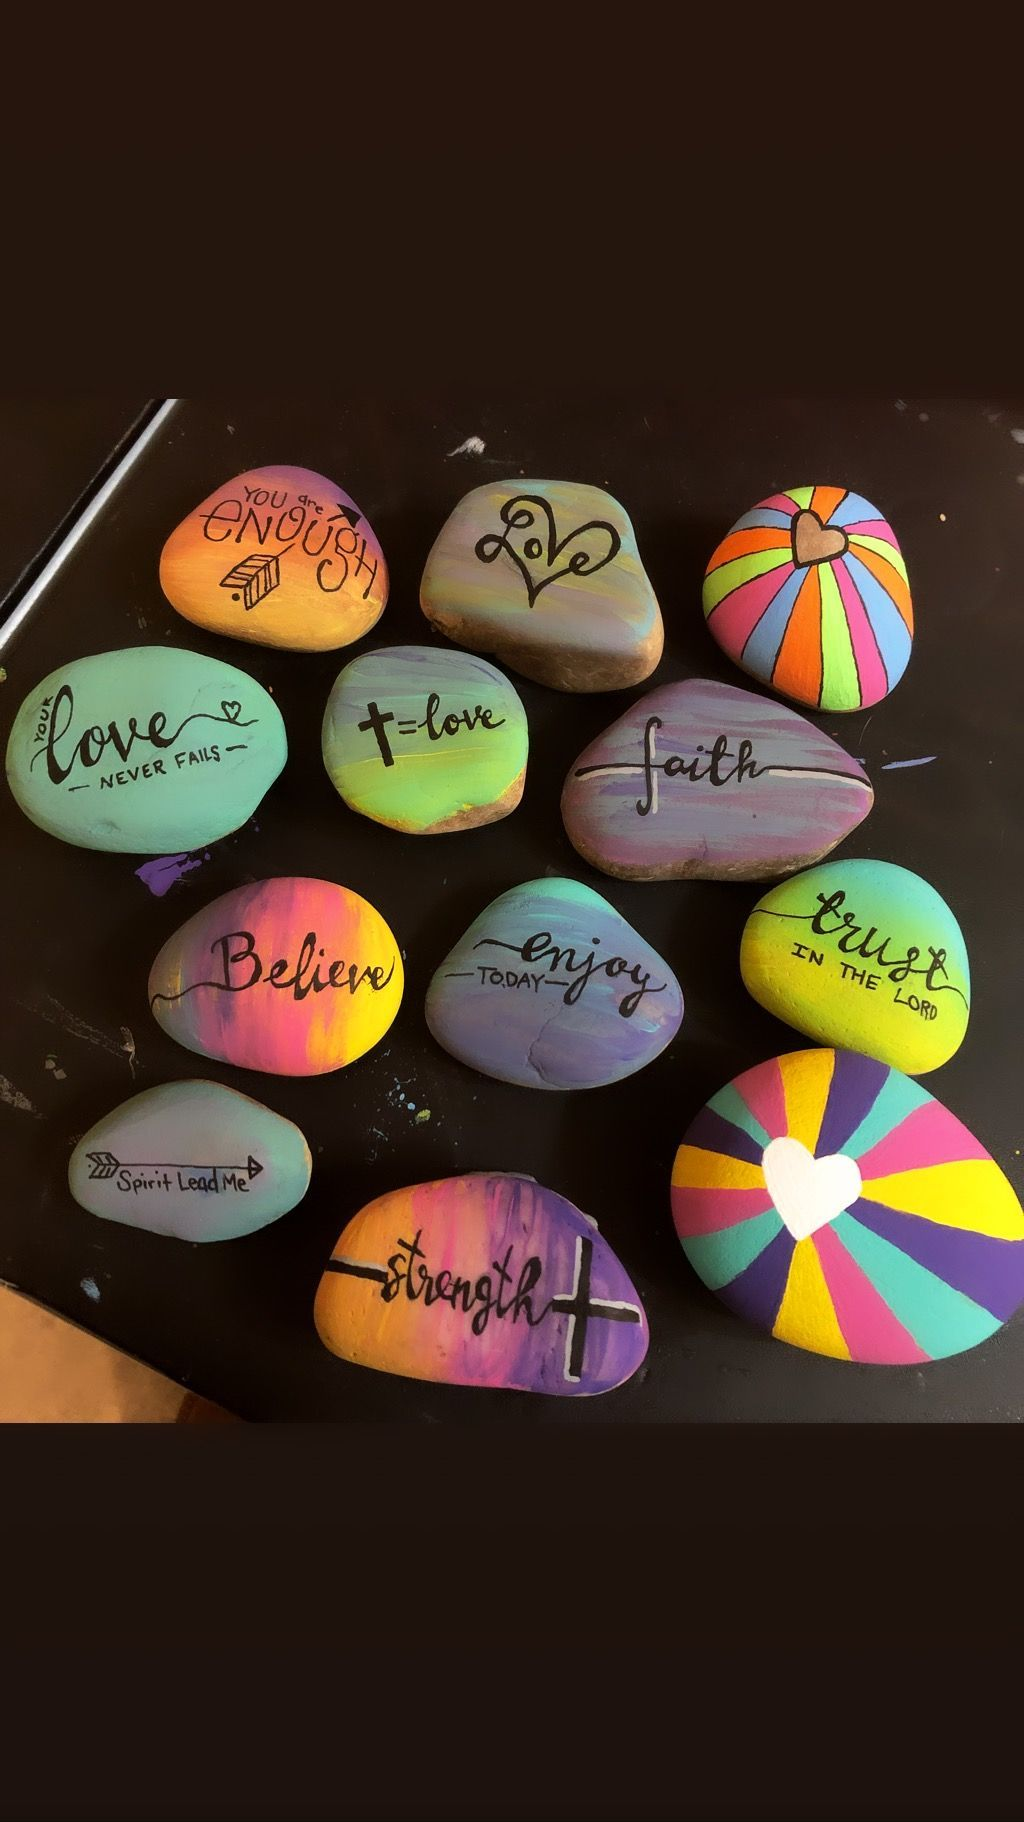 100 Easy Rock Painting Ideas That Will Inspire You Rock Painting 101 Rock Painting Ideas Easy Painted Rocks Inspirational Rocks